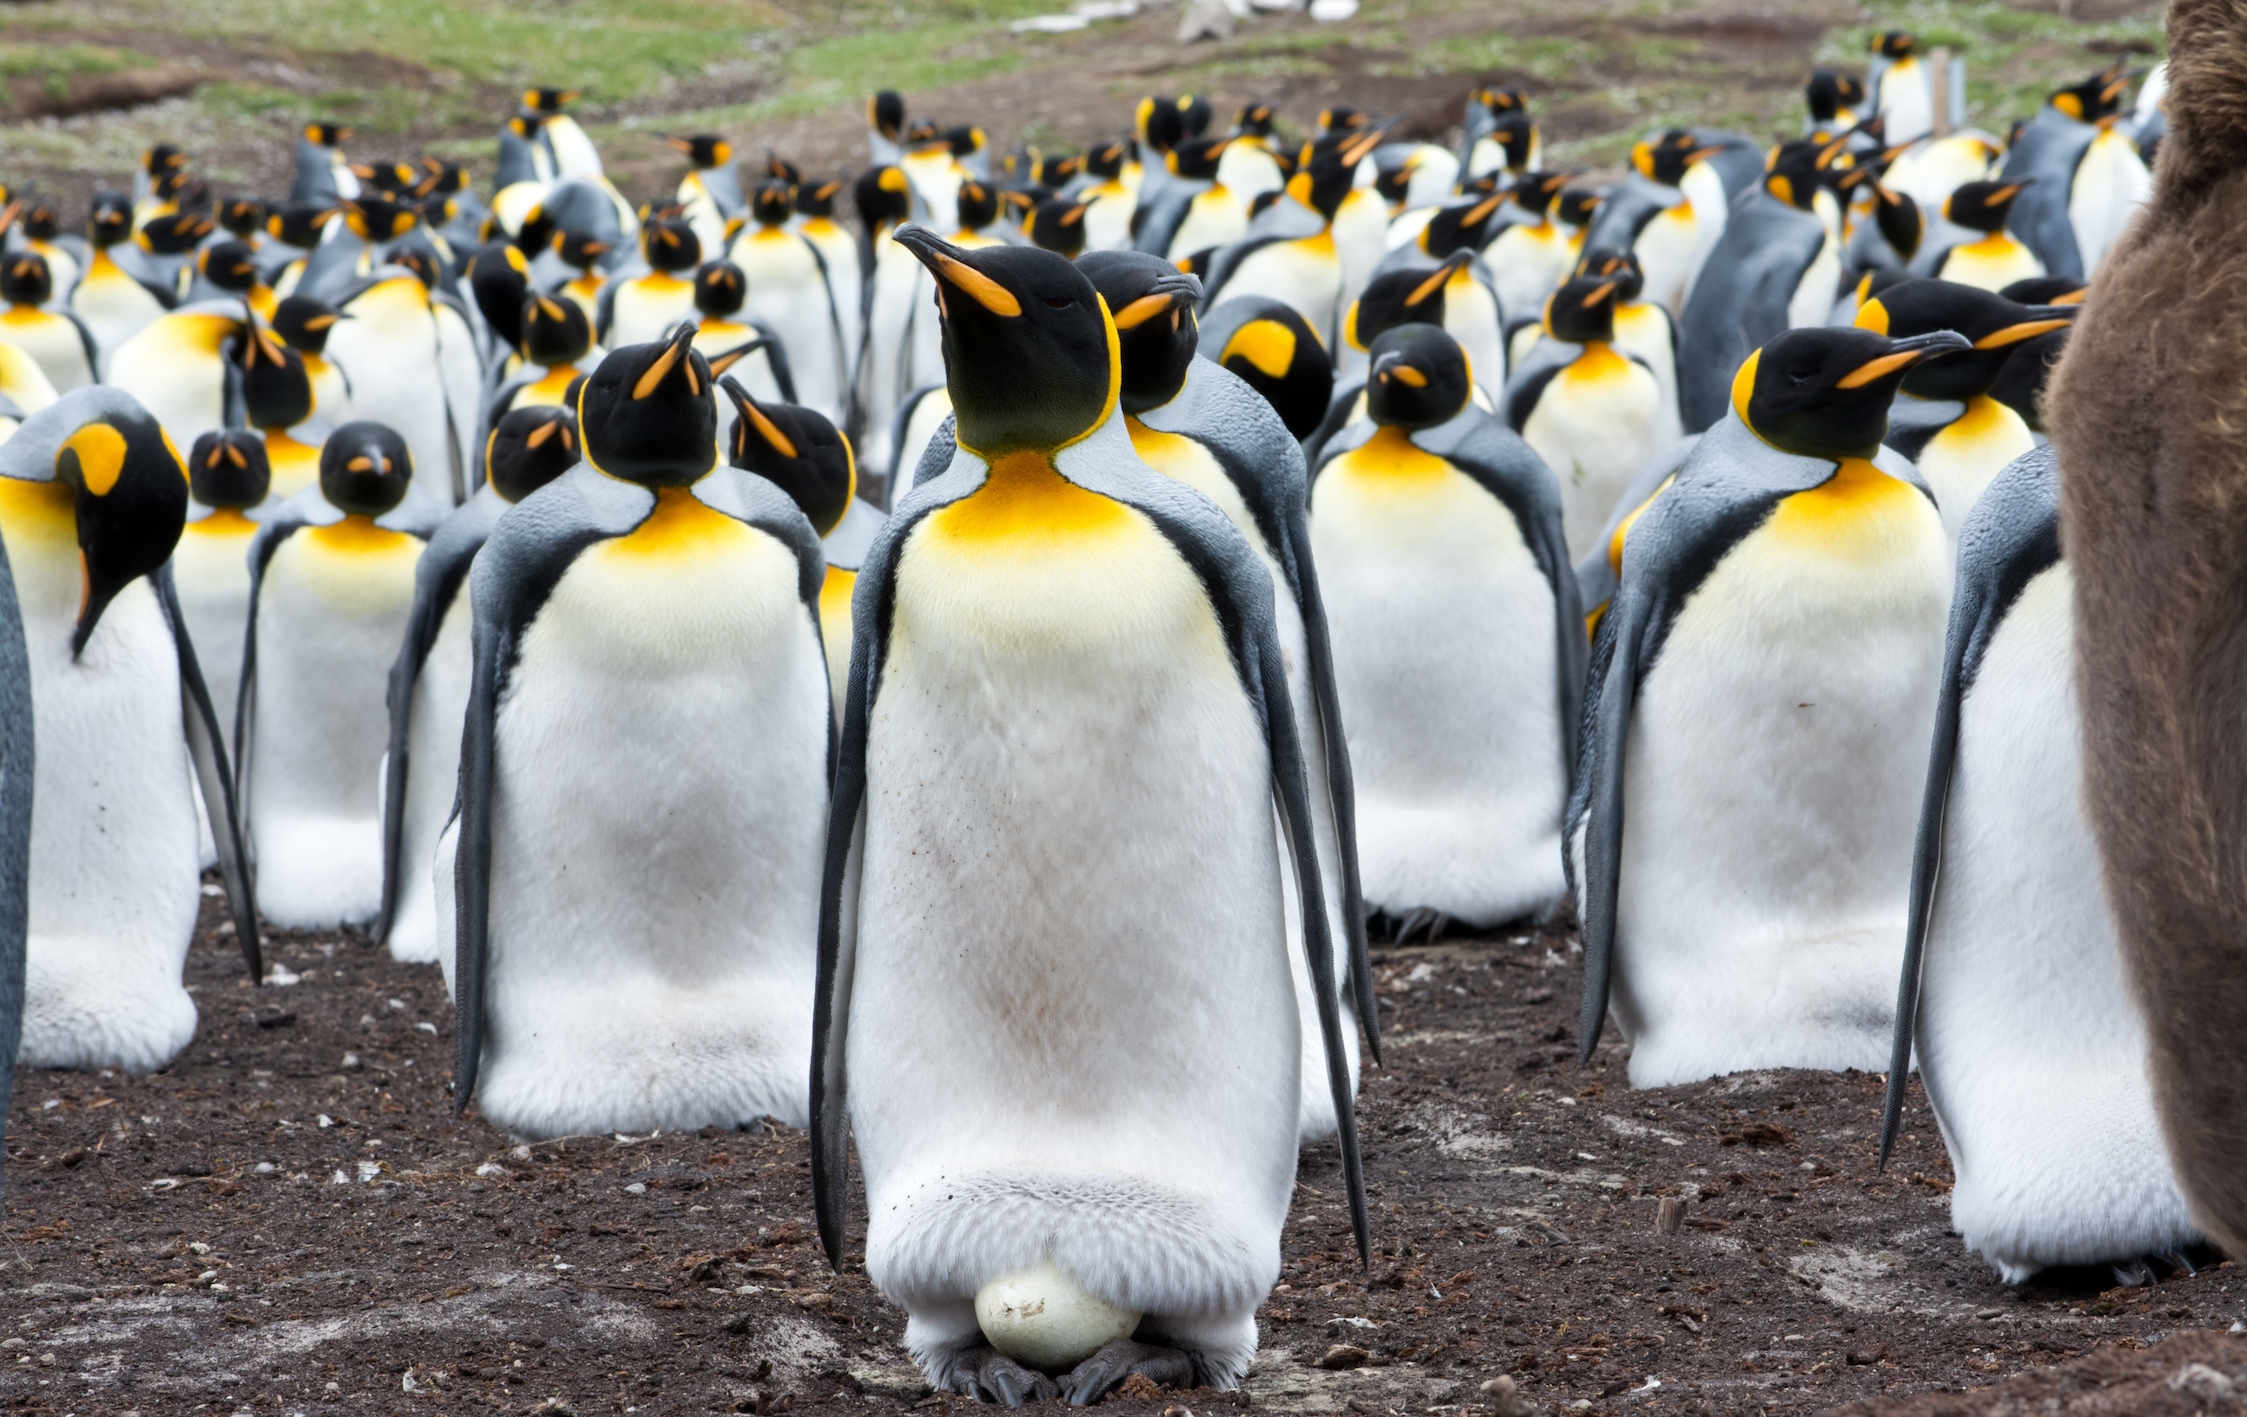 The colony of king penguins on the Île aux Cochons located in the Indian Ocean was once the largest colony of penguins in the world.